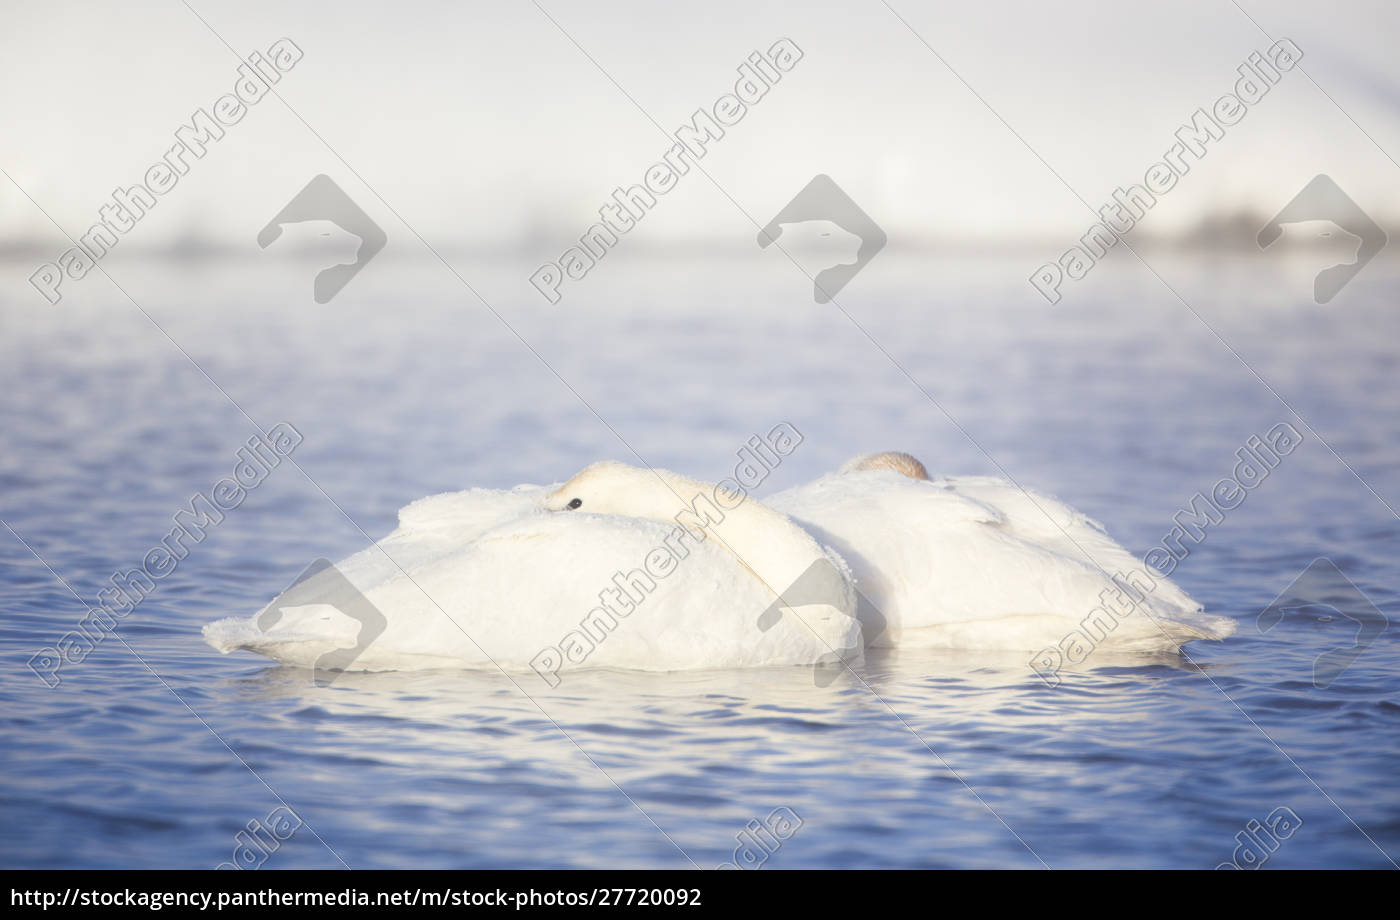 wyoming, , sublette, county, , frosty, trumpeter, swan - 27720092